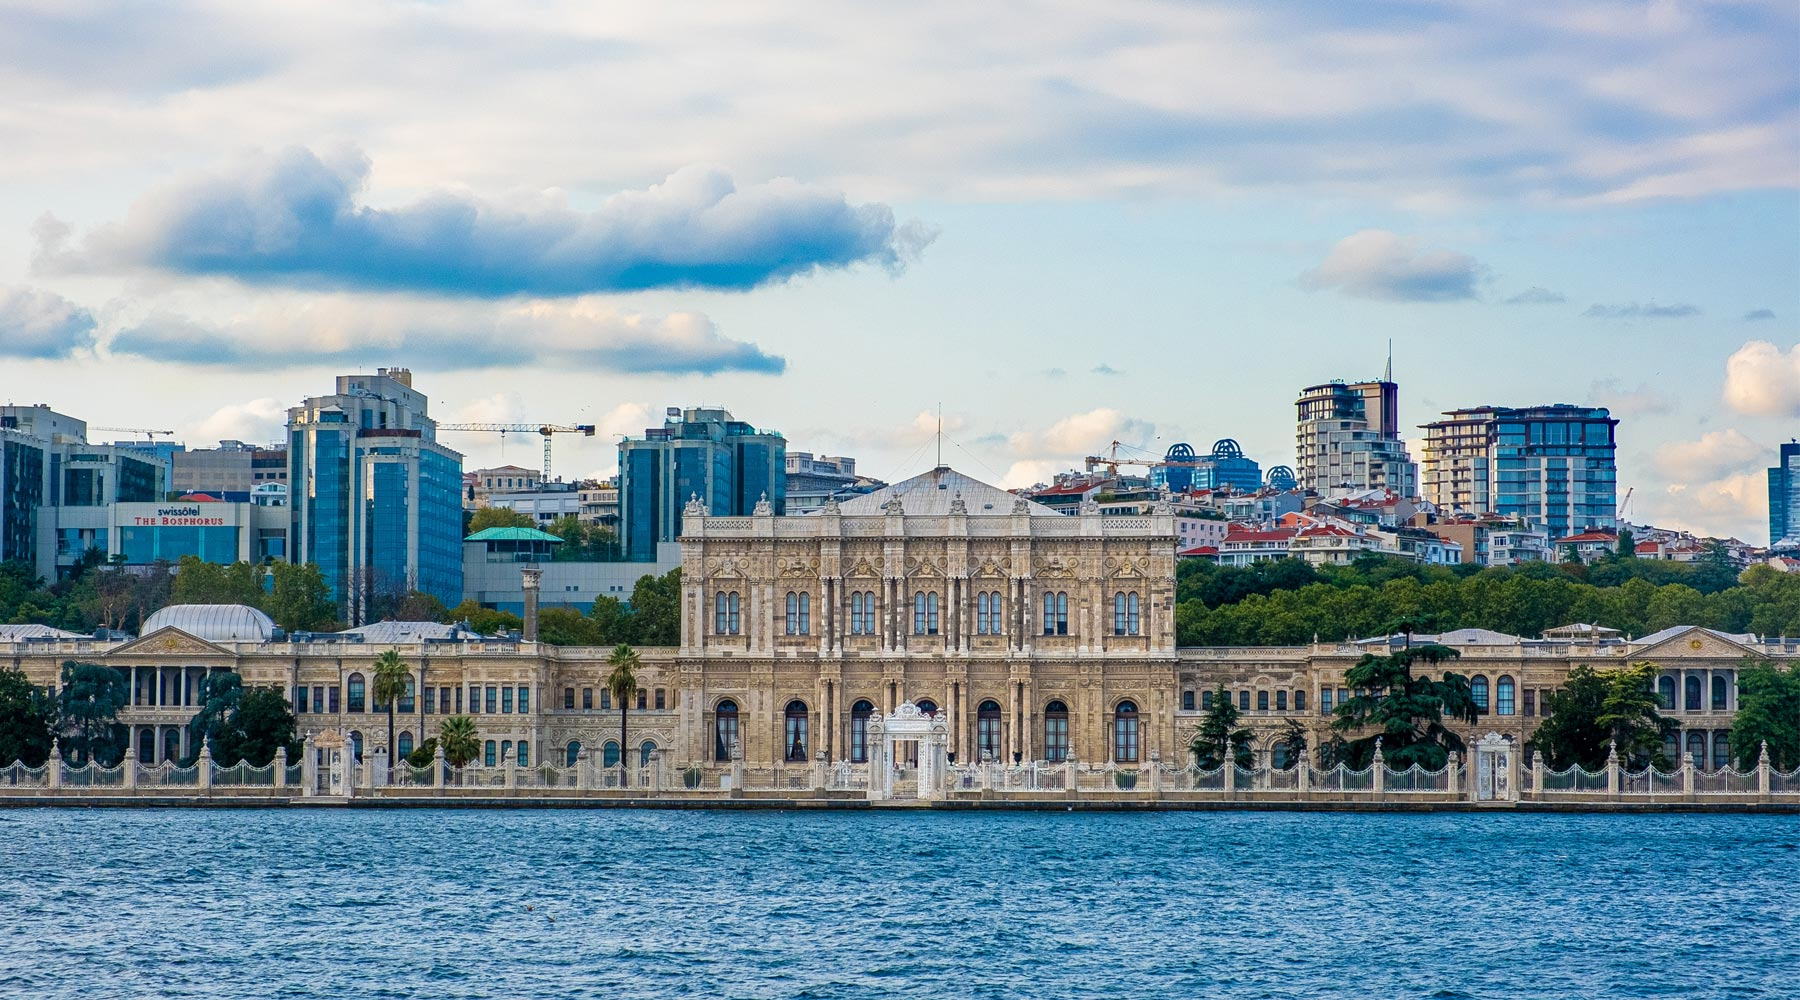 Dolmabahçe Palace – Turkey's Largest Mono-Block Palace